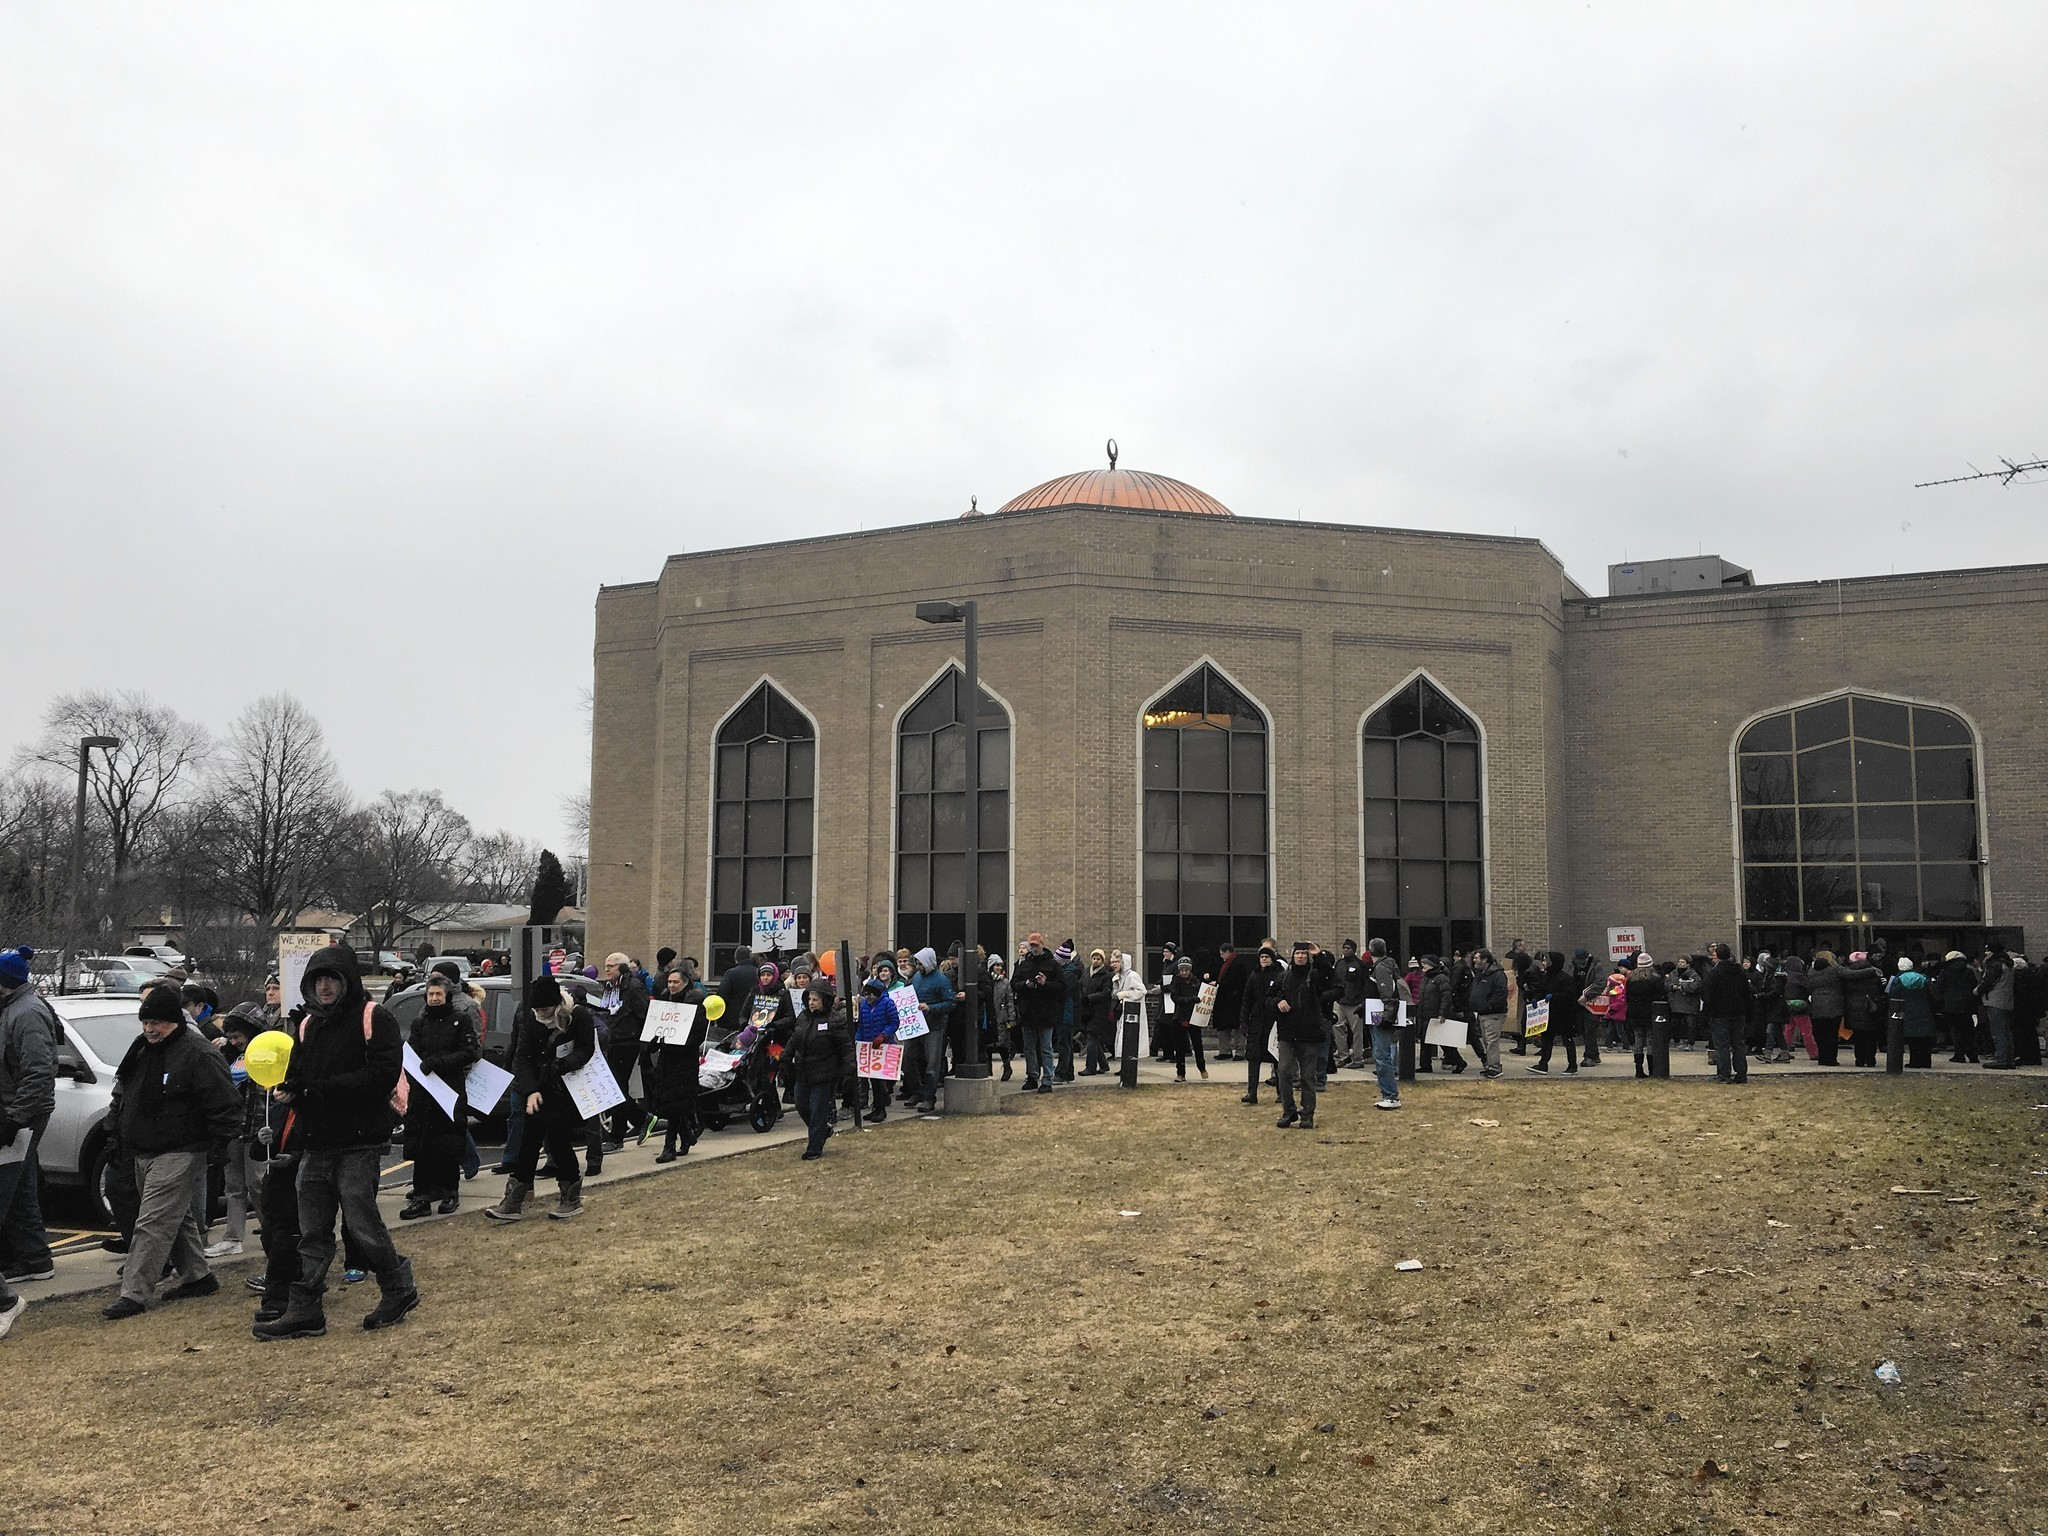 morton grove muslim Morton grove resident jenny montgomery said a young muslim boy in her fourth grade classroom asked her repeatedly to come to a recent open house at the mosque where the boy and his family.